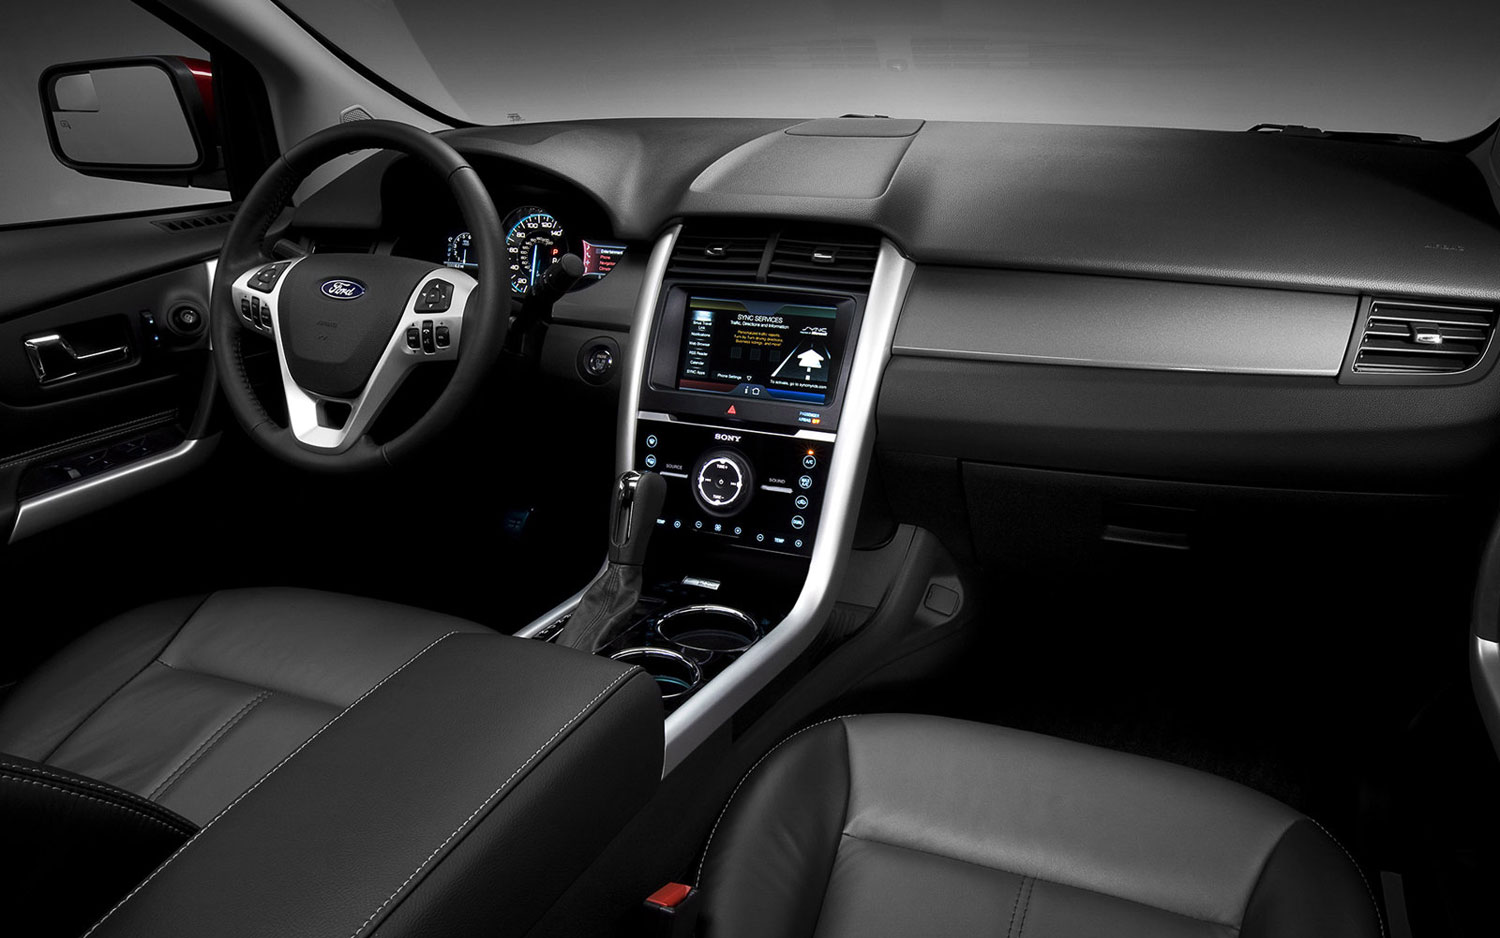 amazing-design-of-the-black-dash-ideas-with-silver-accent-ideas-as-the-ford-edge-2015-interior